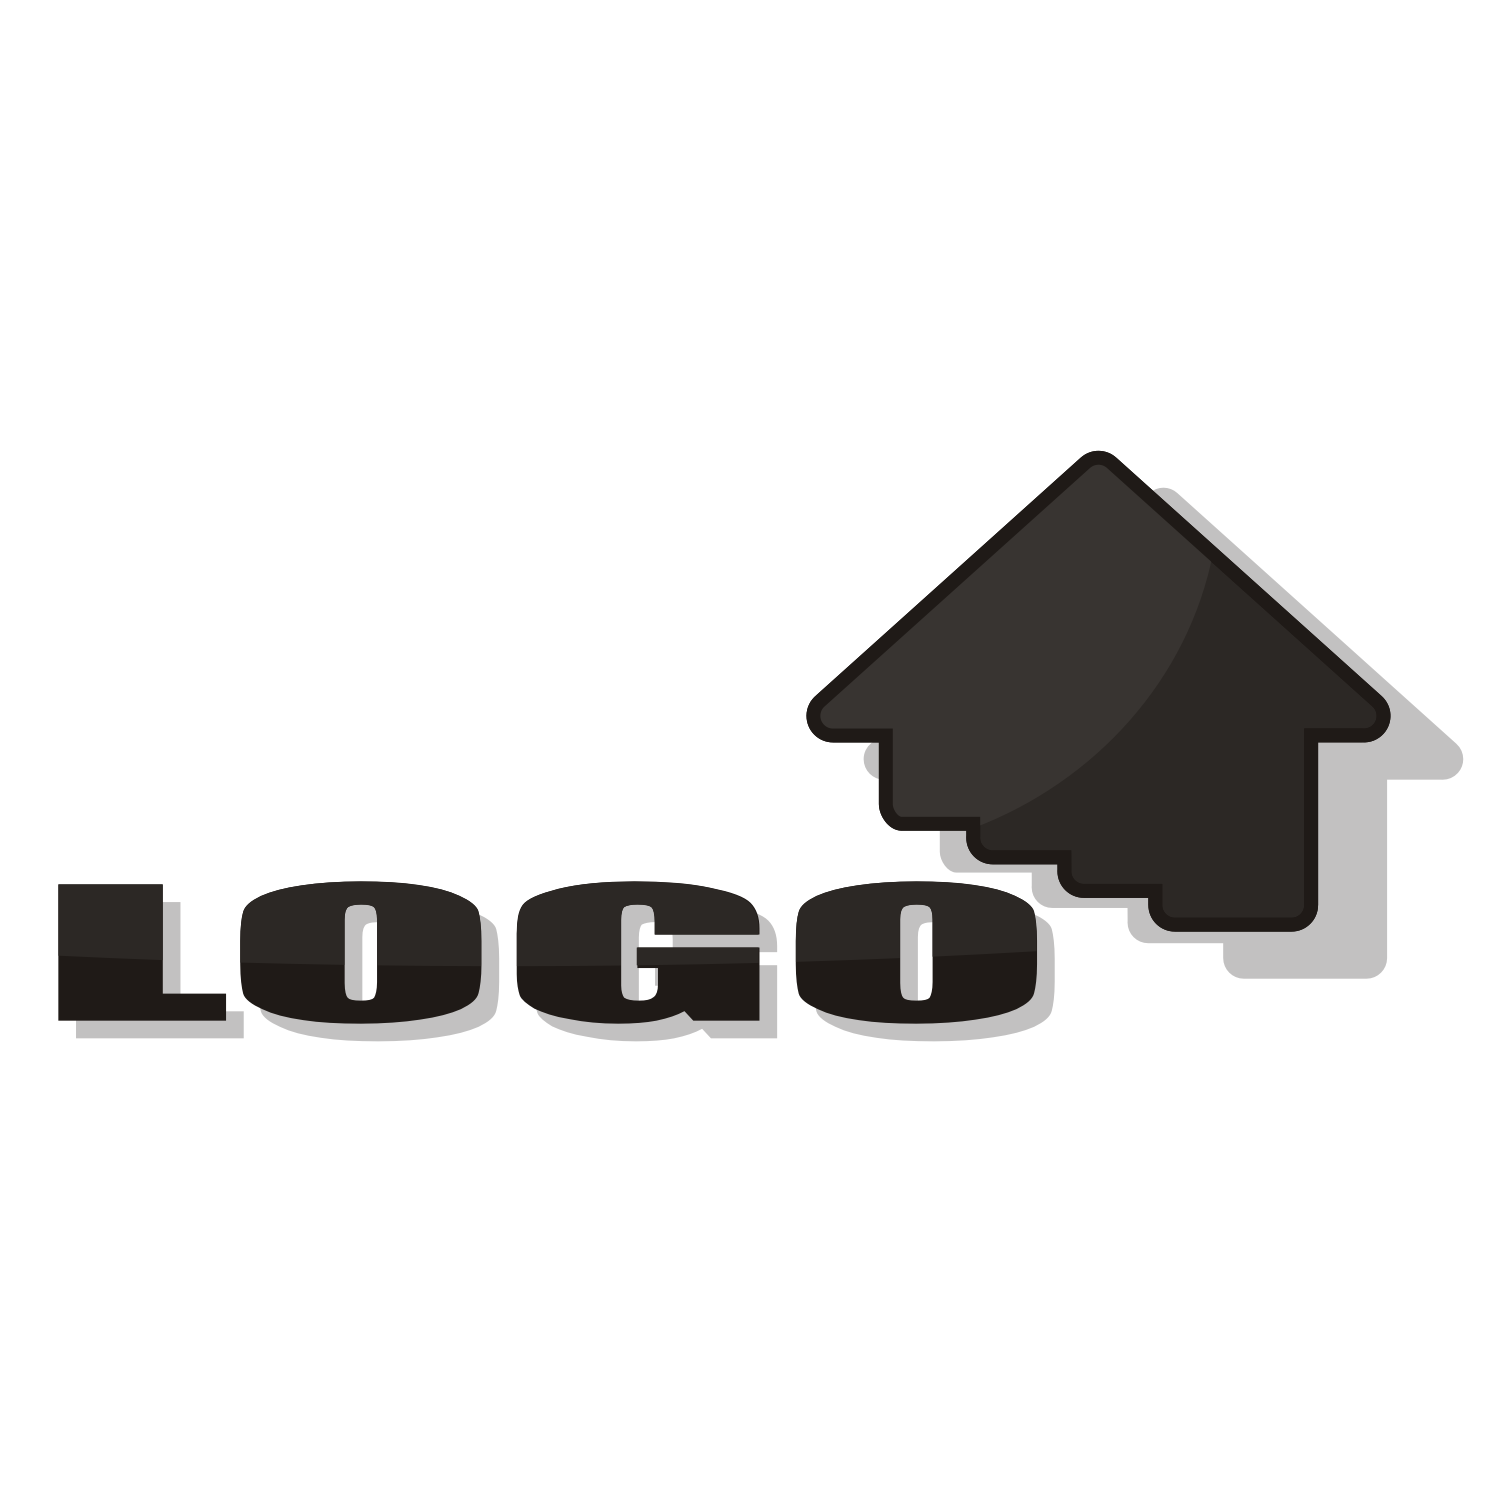 House for card or logo